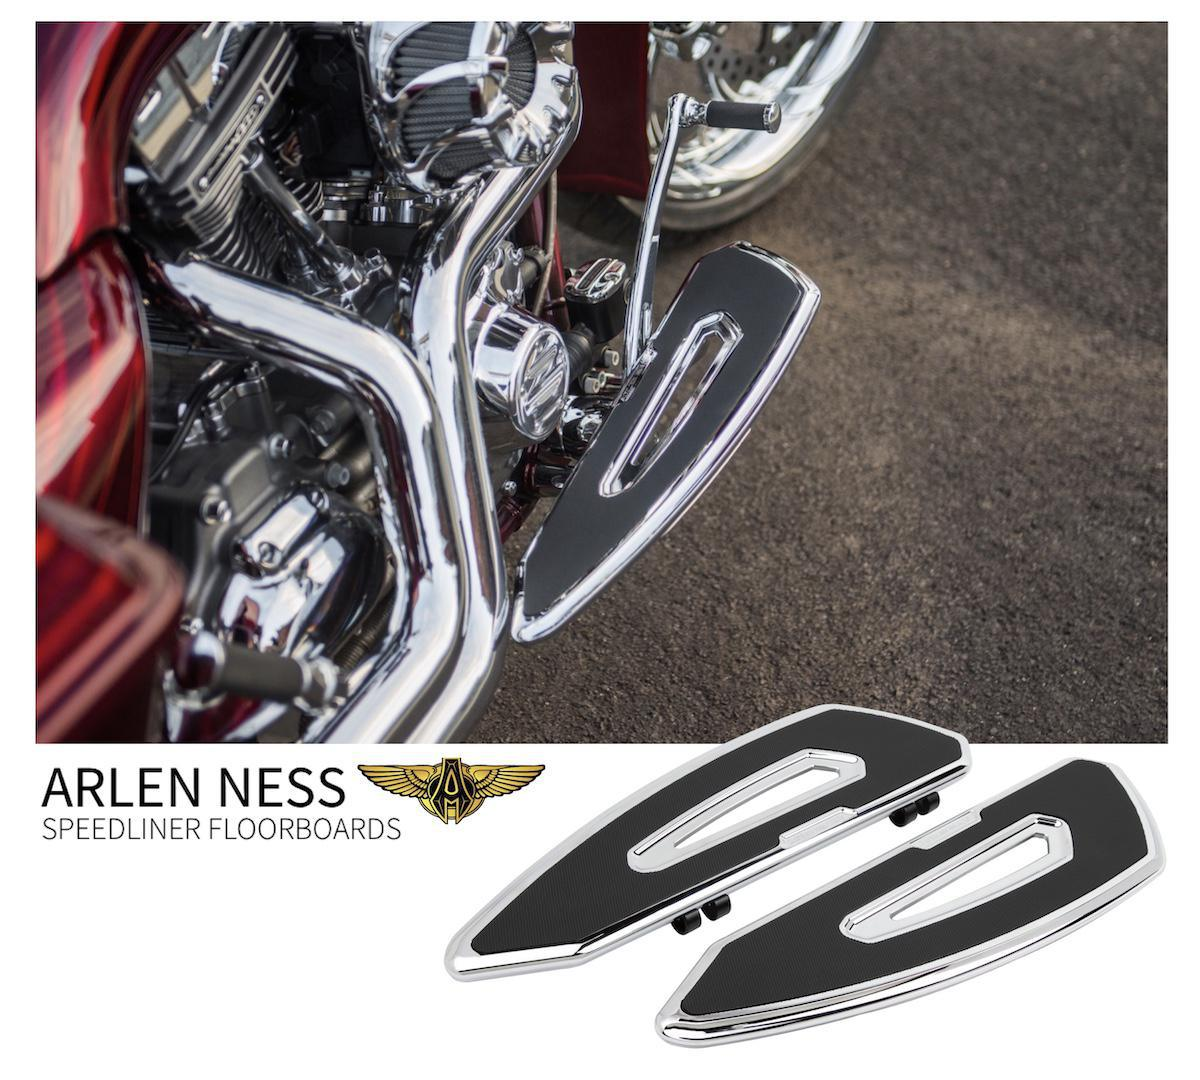 ARLEN NESS - Speedliner Floorboards